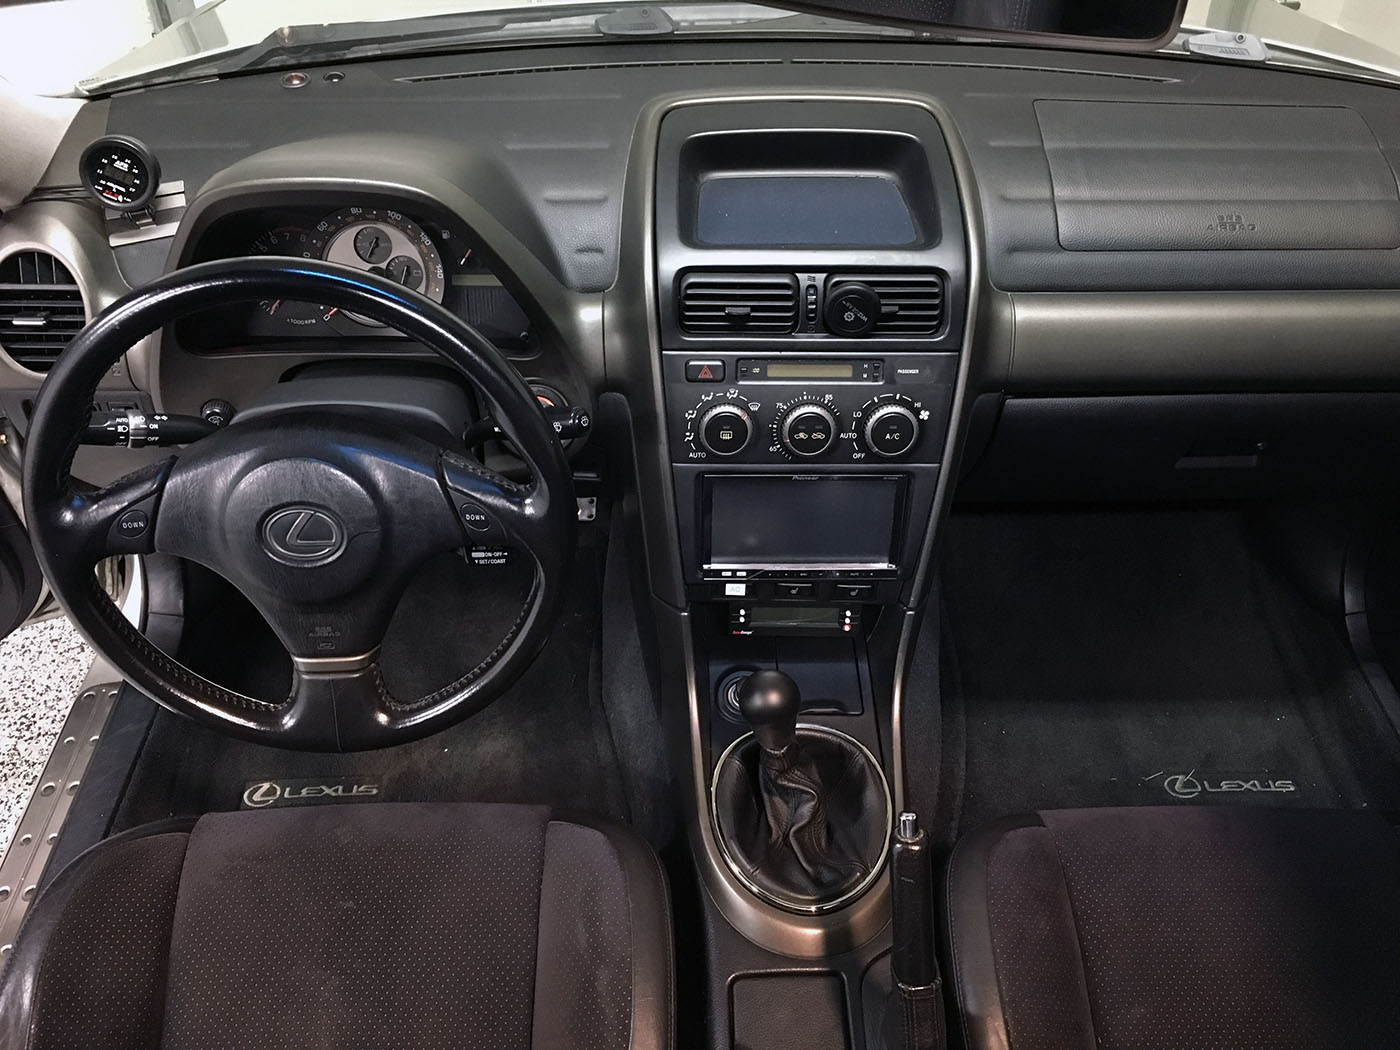 for sale lexus is300 with a ls3 engine swap depot rh engineswapdepot com 2001 lexus is300 manual for sale 2001 lexus es300 manual free download